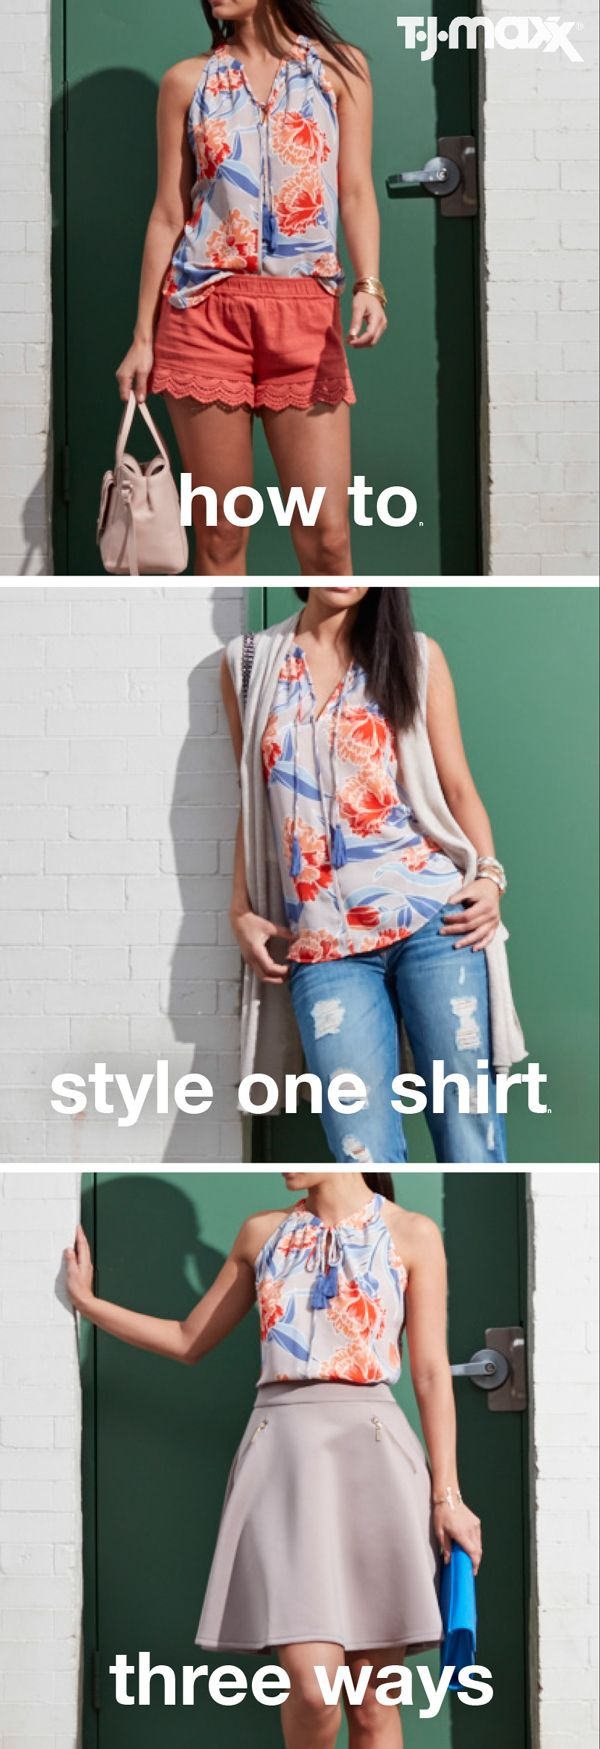 How-To: Style One Shirt Three Ways: Make the most of your closet this season by styling your favorite floral shirt three different ways. Swap out accessories, change up your shoes and switch out jeans for skirts & shorts to keep your look fresh. Shop TJMaxx.com for everything you need to reinvent your wardrobe.